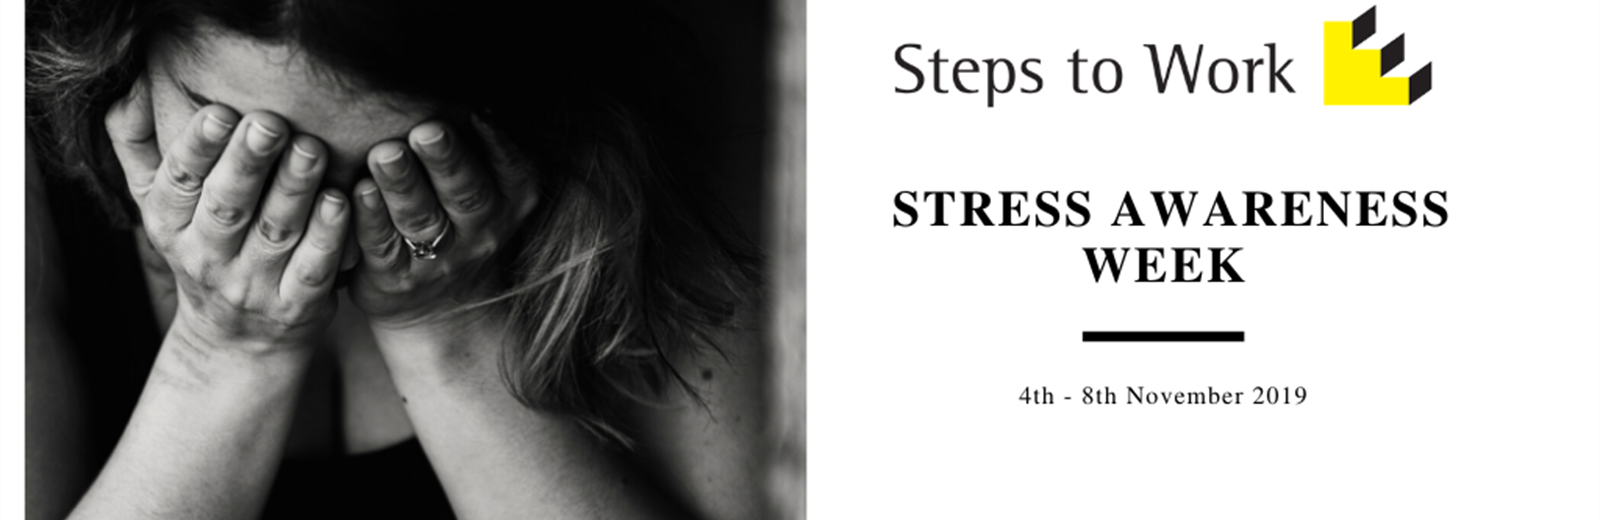 Steps To Work Support Stress Awareness Week 2019